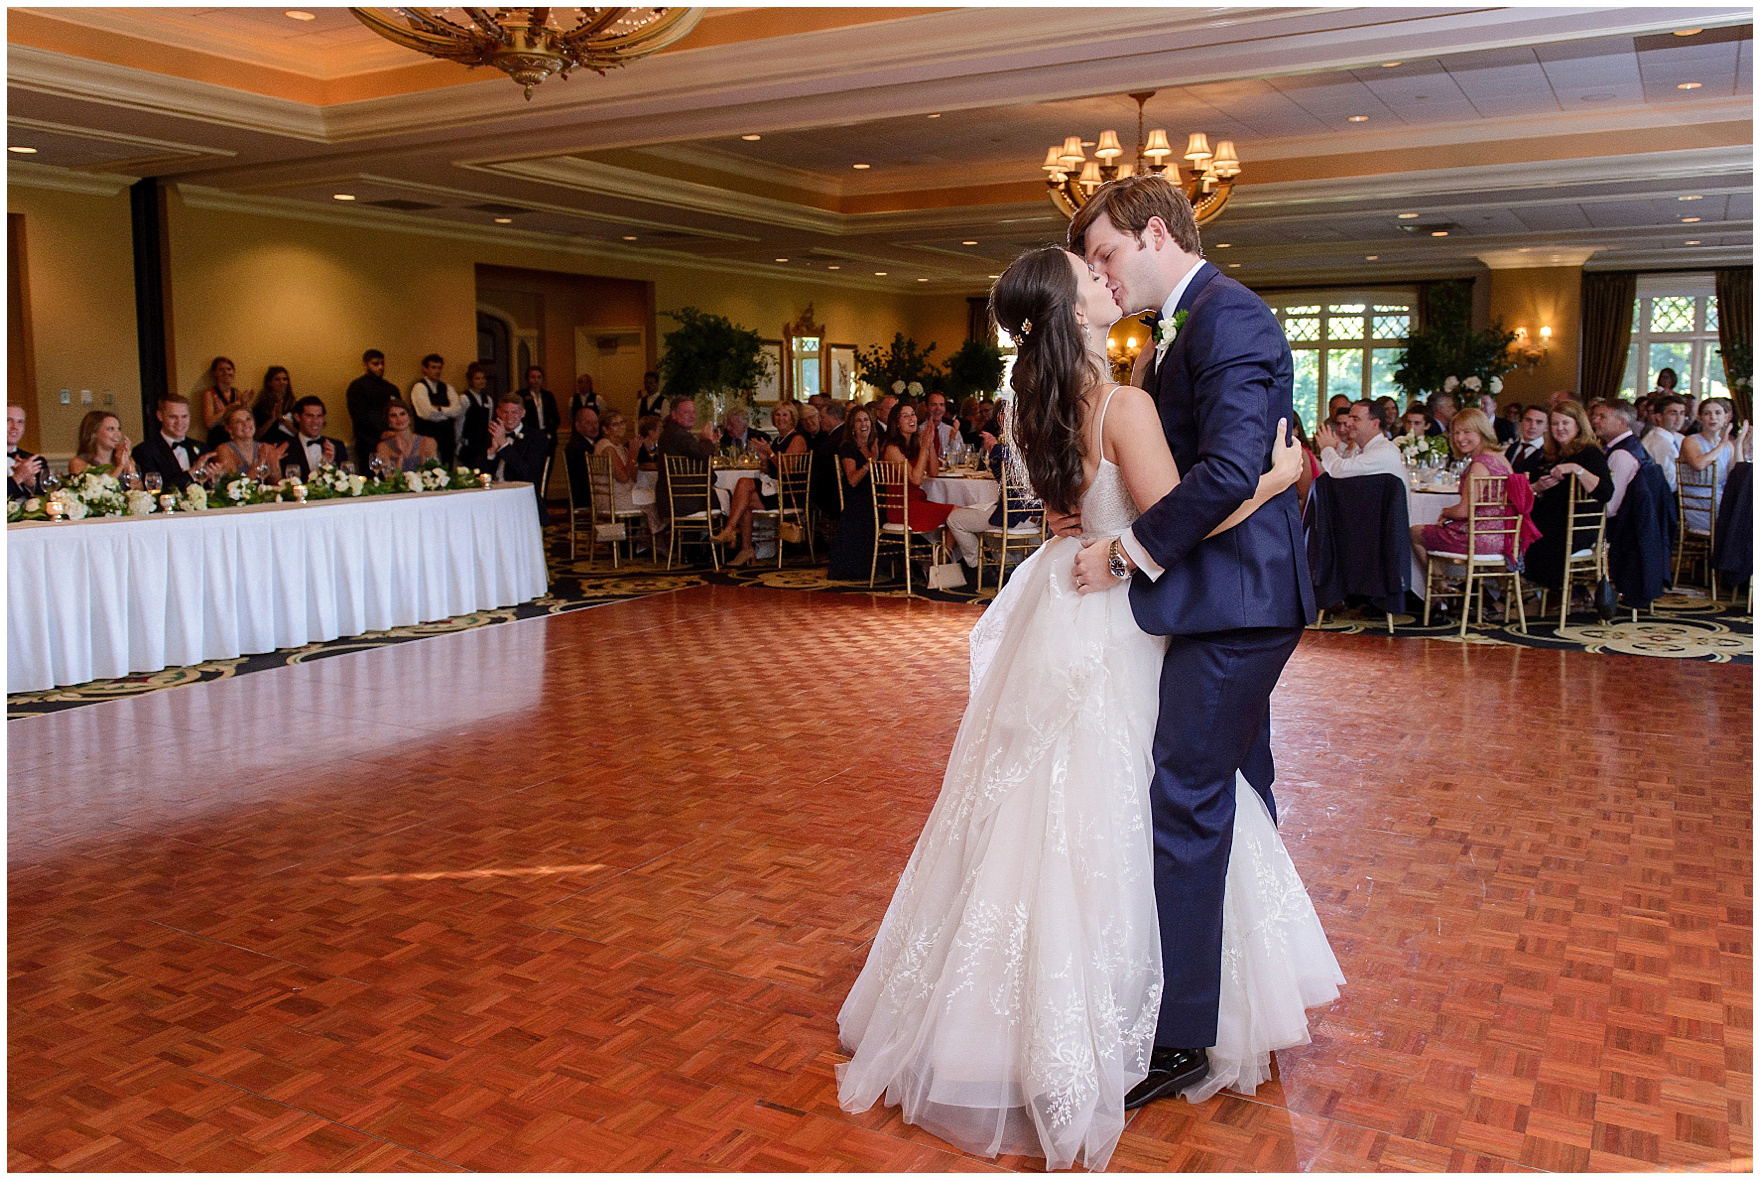 The bride and groom share their first dance during a Butterfield Country Club wedding.